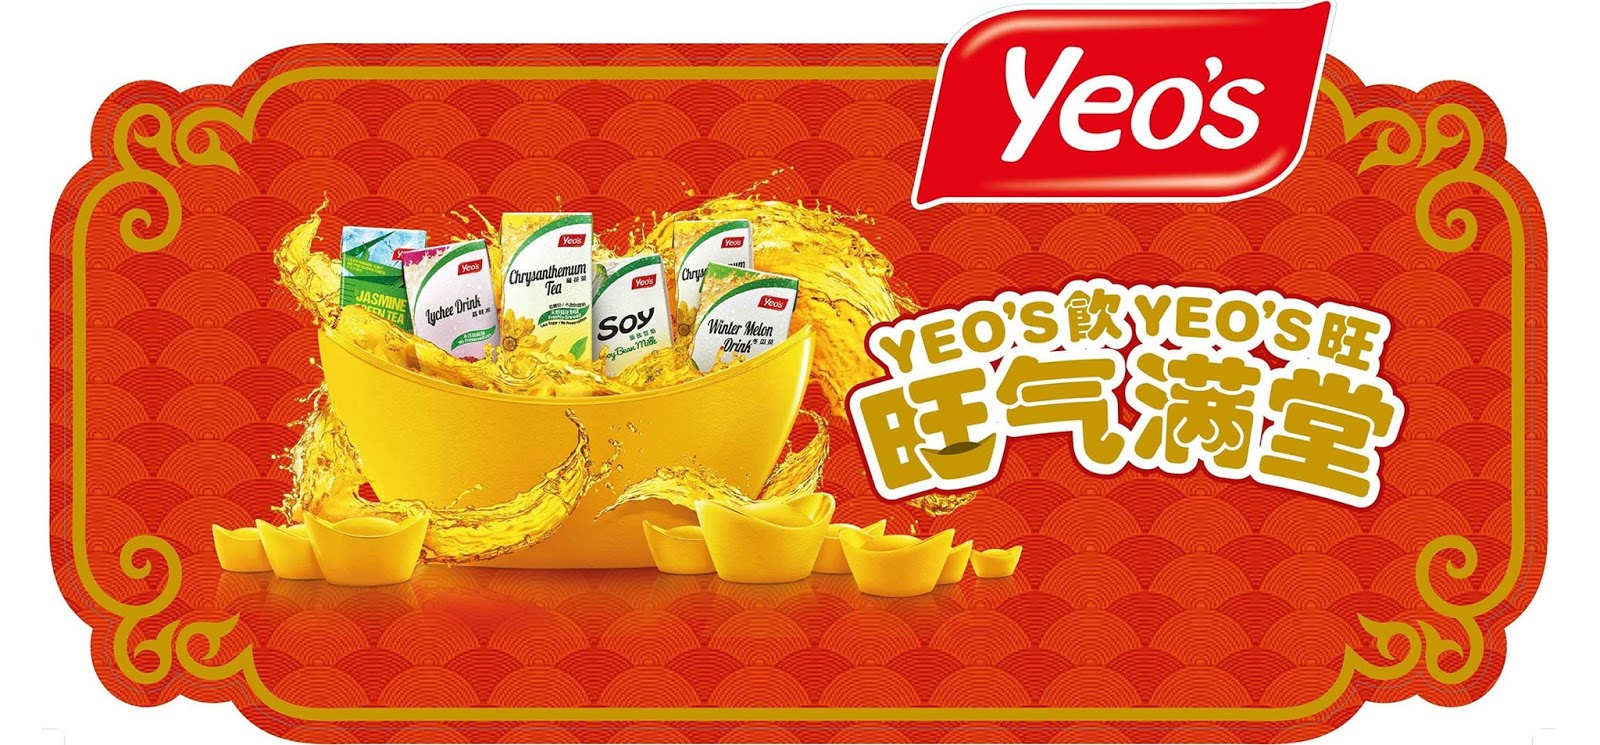 2016 chinese new year marketing campaign from limited edition cans yeos take of its cny campaign is playing with words to deliver the prosperity and auspicious message yeos rhymes with the chinese word yue or more kristyandbryce Gallery